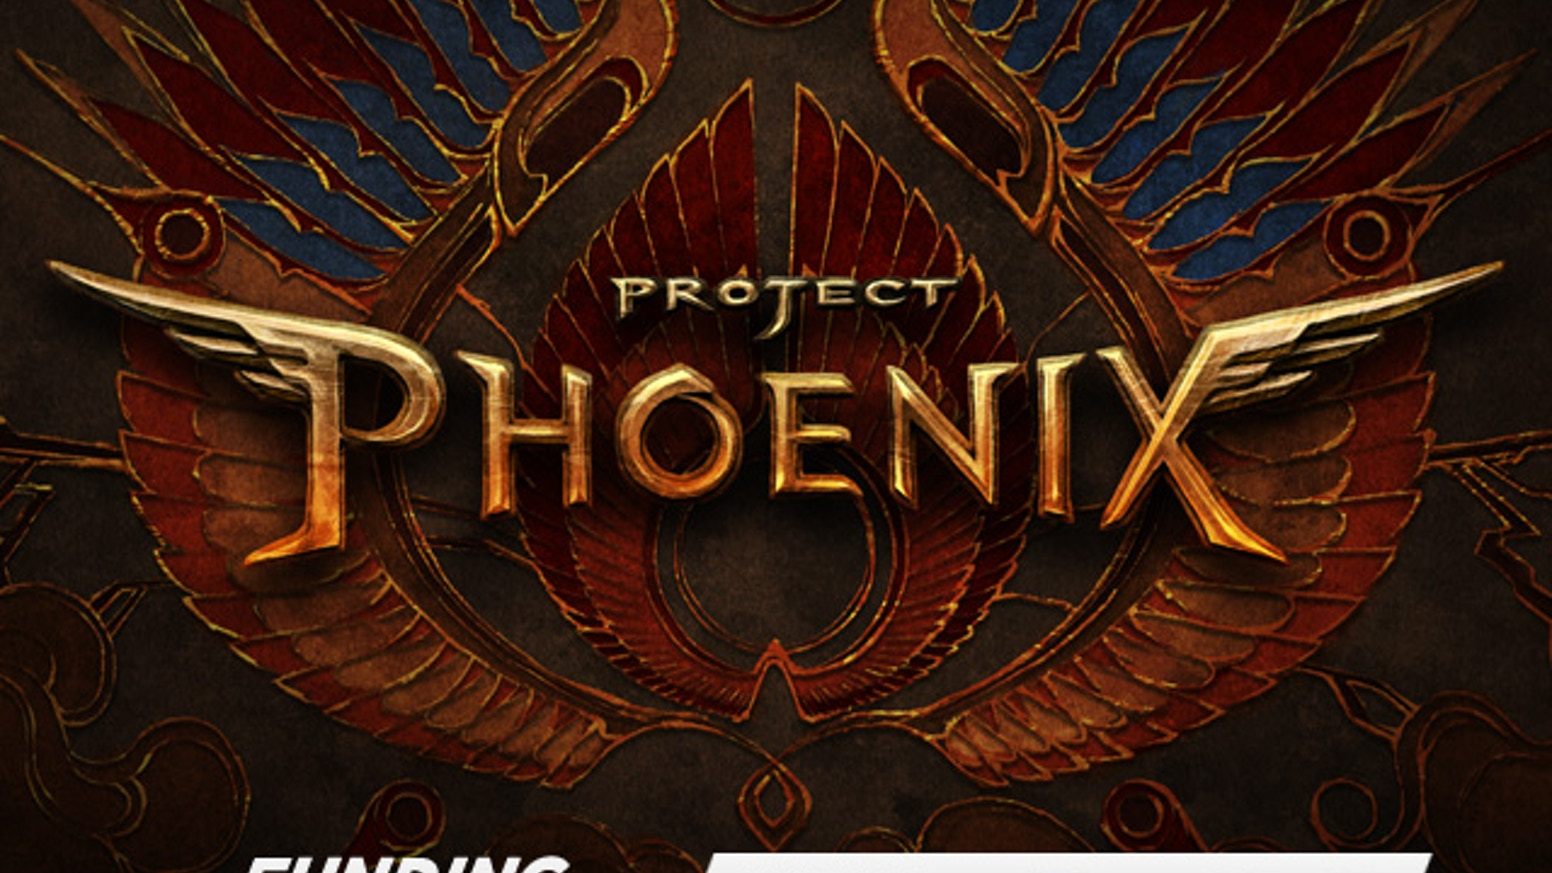 Project Phoenix is a JRPG with a squad based RTS game design, brought to you by veteran developers and creators from the East and West.